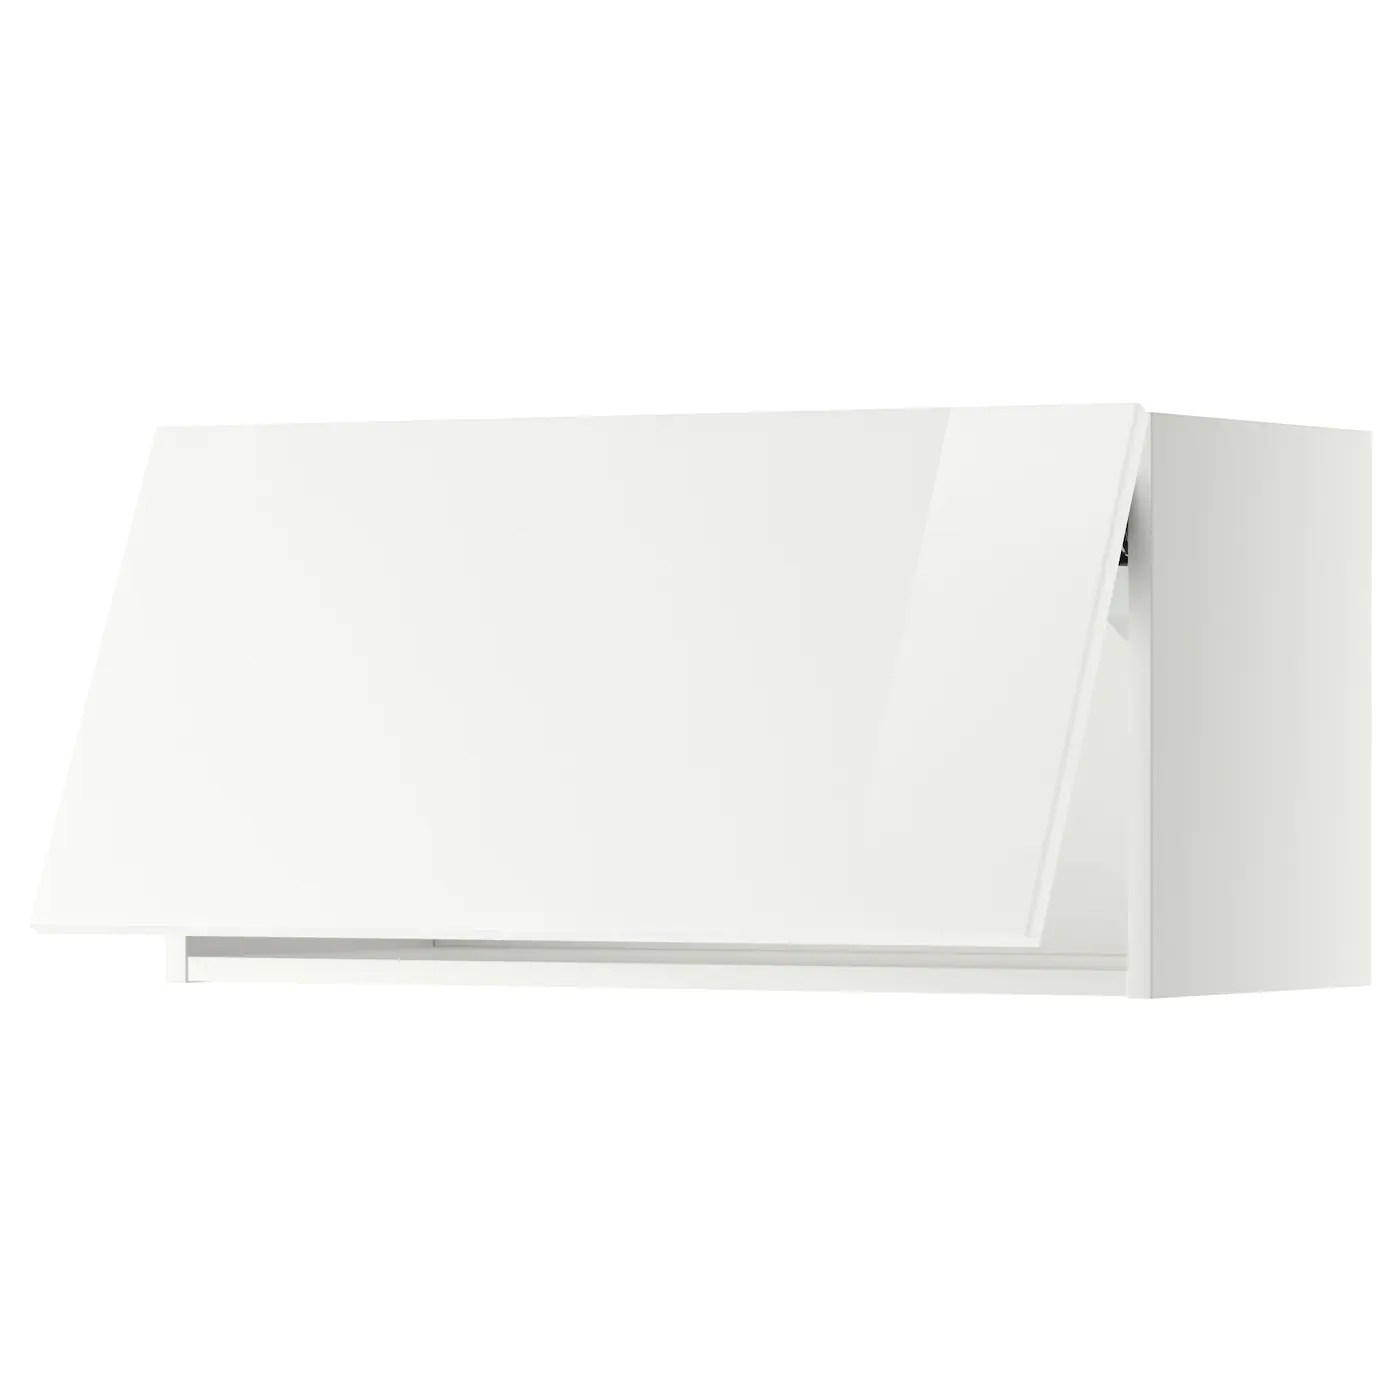 Ikea Method Metod Wall Cabinet Horizontal White Ringhult White